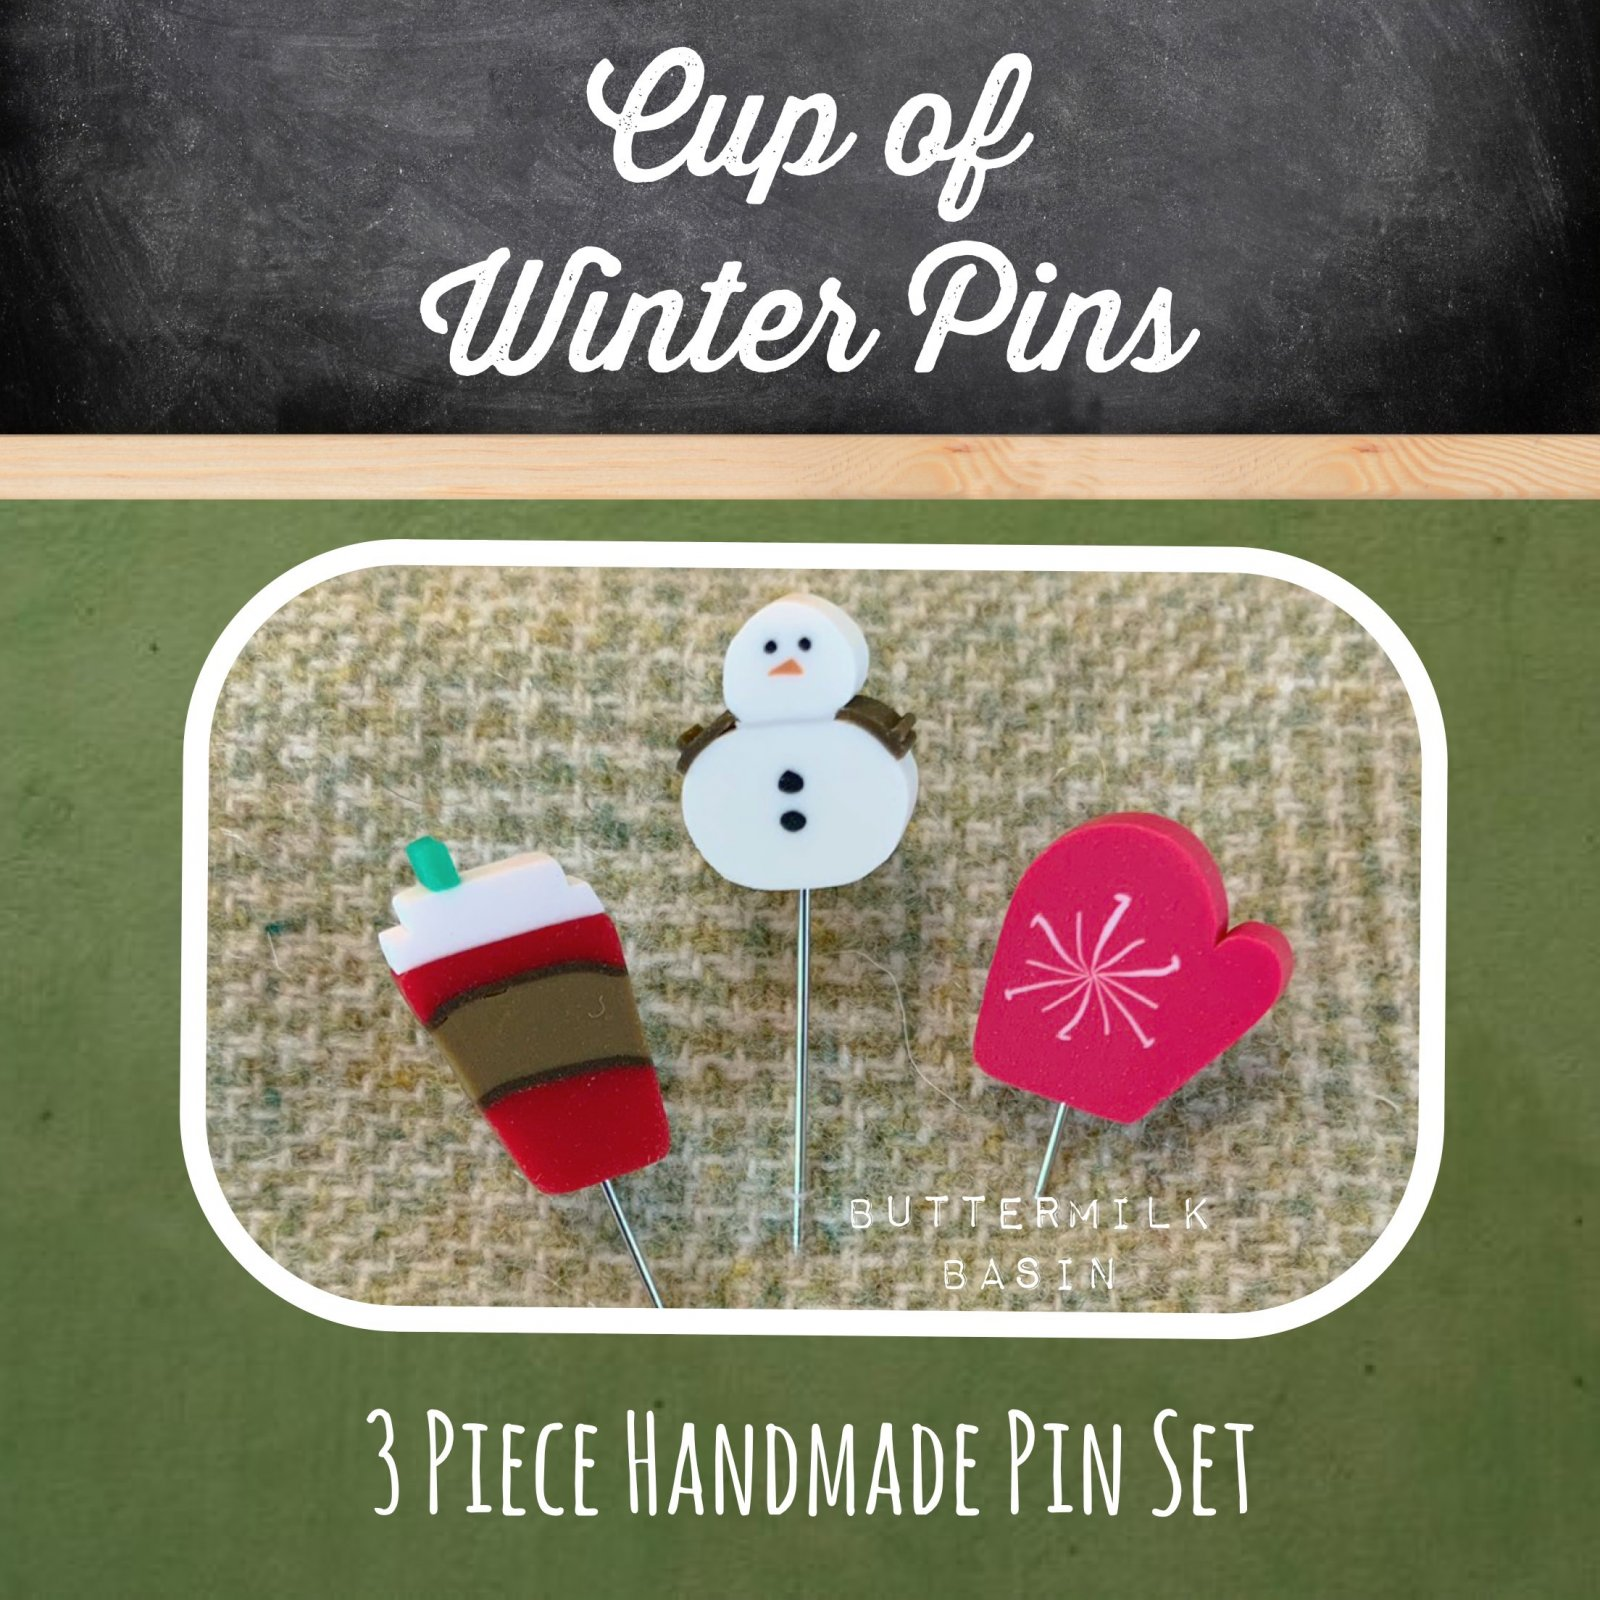 Cup of Winter Pins